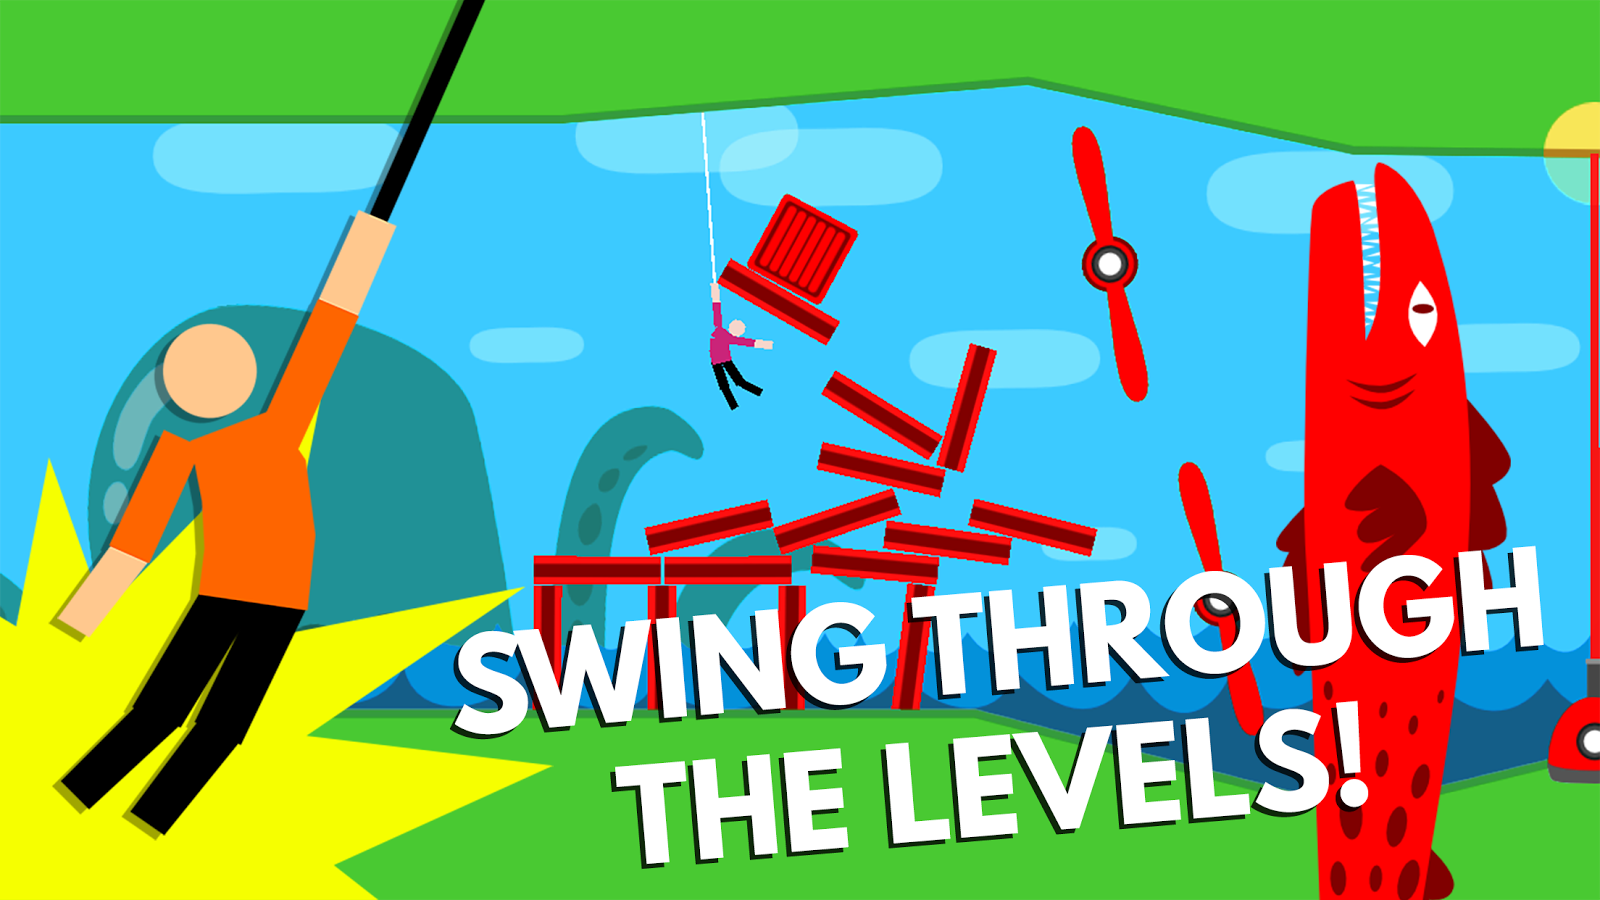 Как в happy wheels сделать rope swing